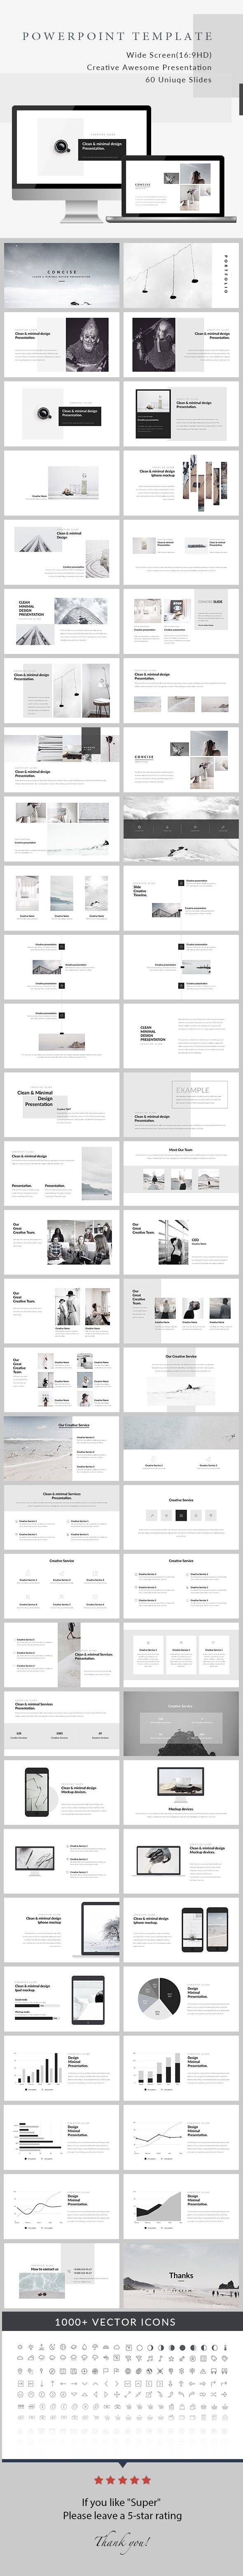 Concise Minimal PowerPoint Presentation #creative #portfolio • Download ➝ https://graphicriver.net/item/concise-minimal-powerpoint-presentation/18312786?ref=pxcr